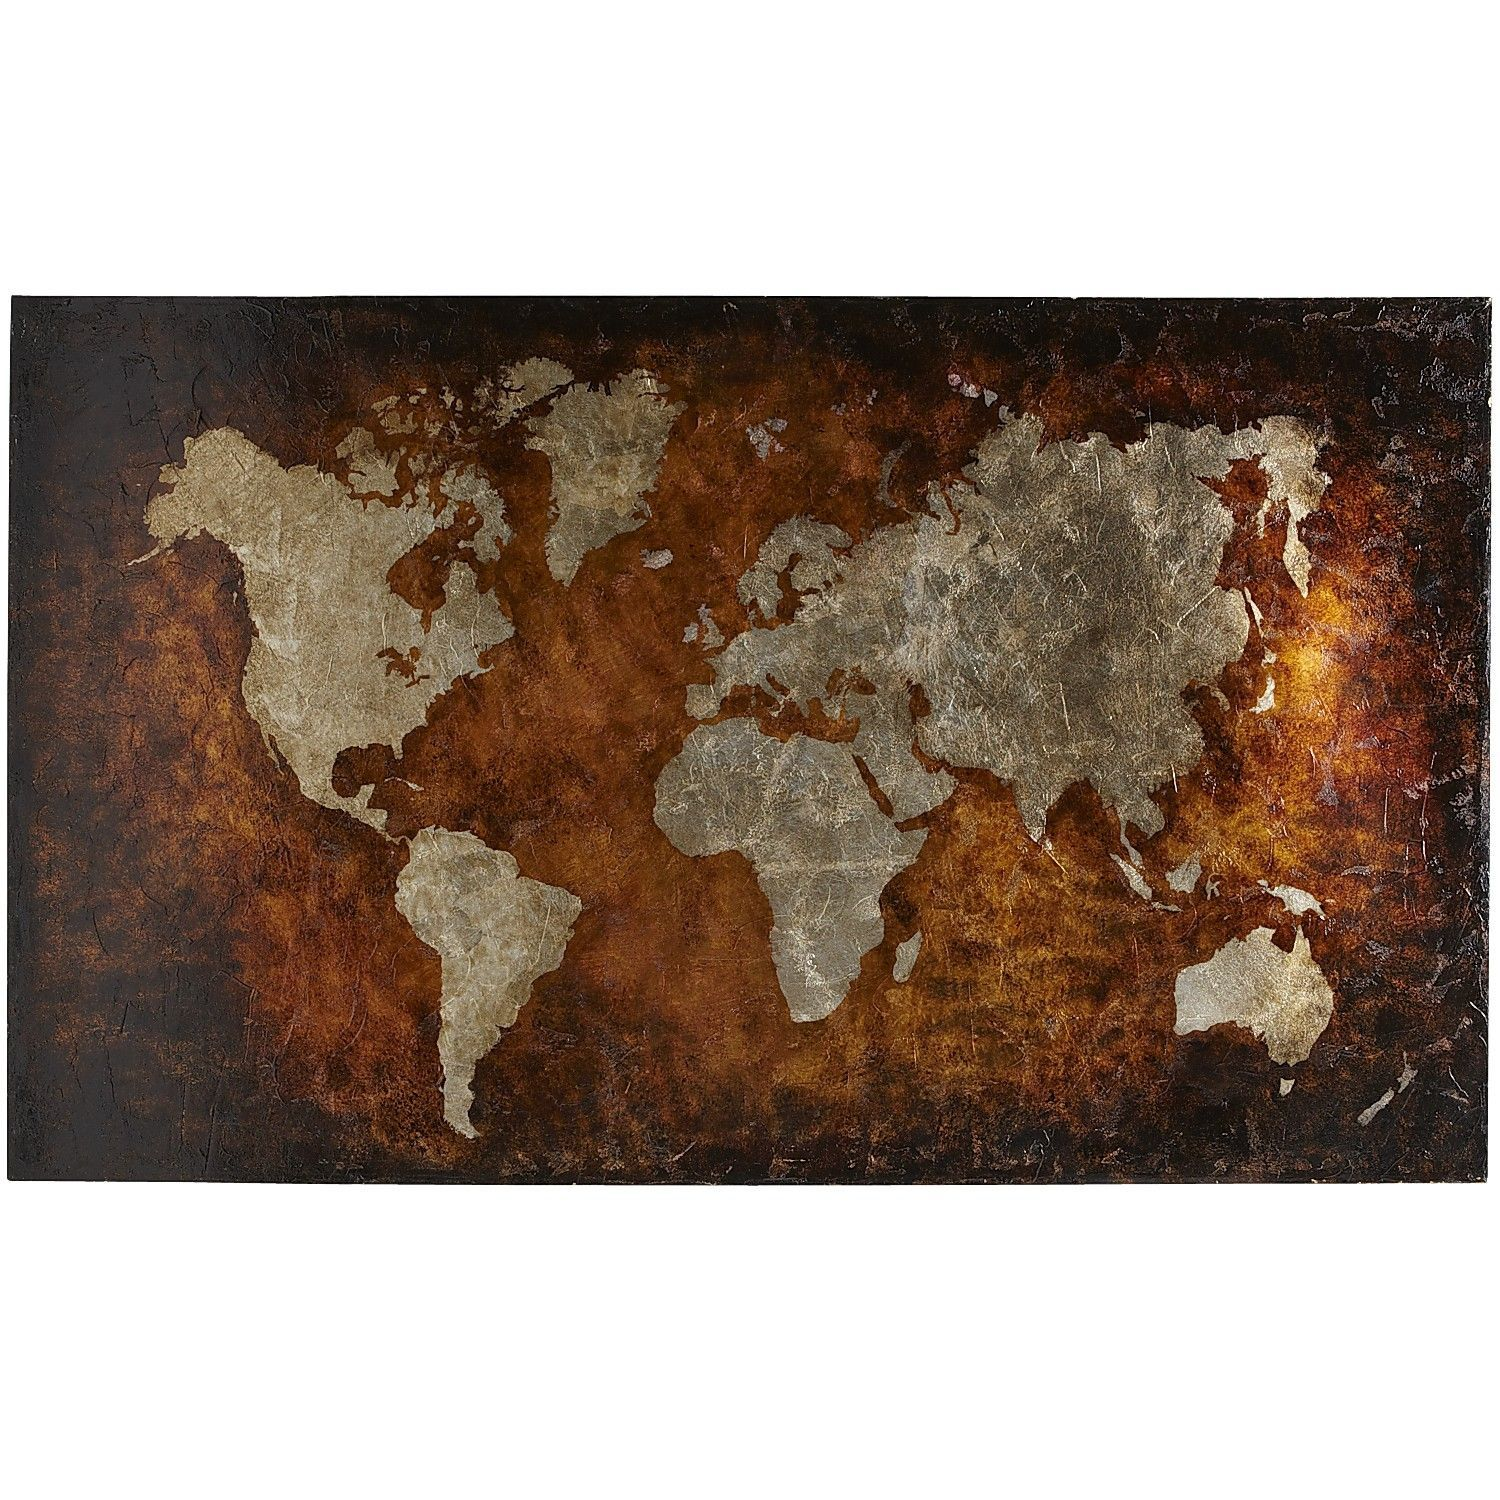 Pier 1 world map art bronze map it pinterest living room pier 1 world map art bronze gumiabroncs Image collections